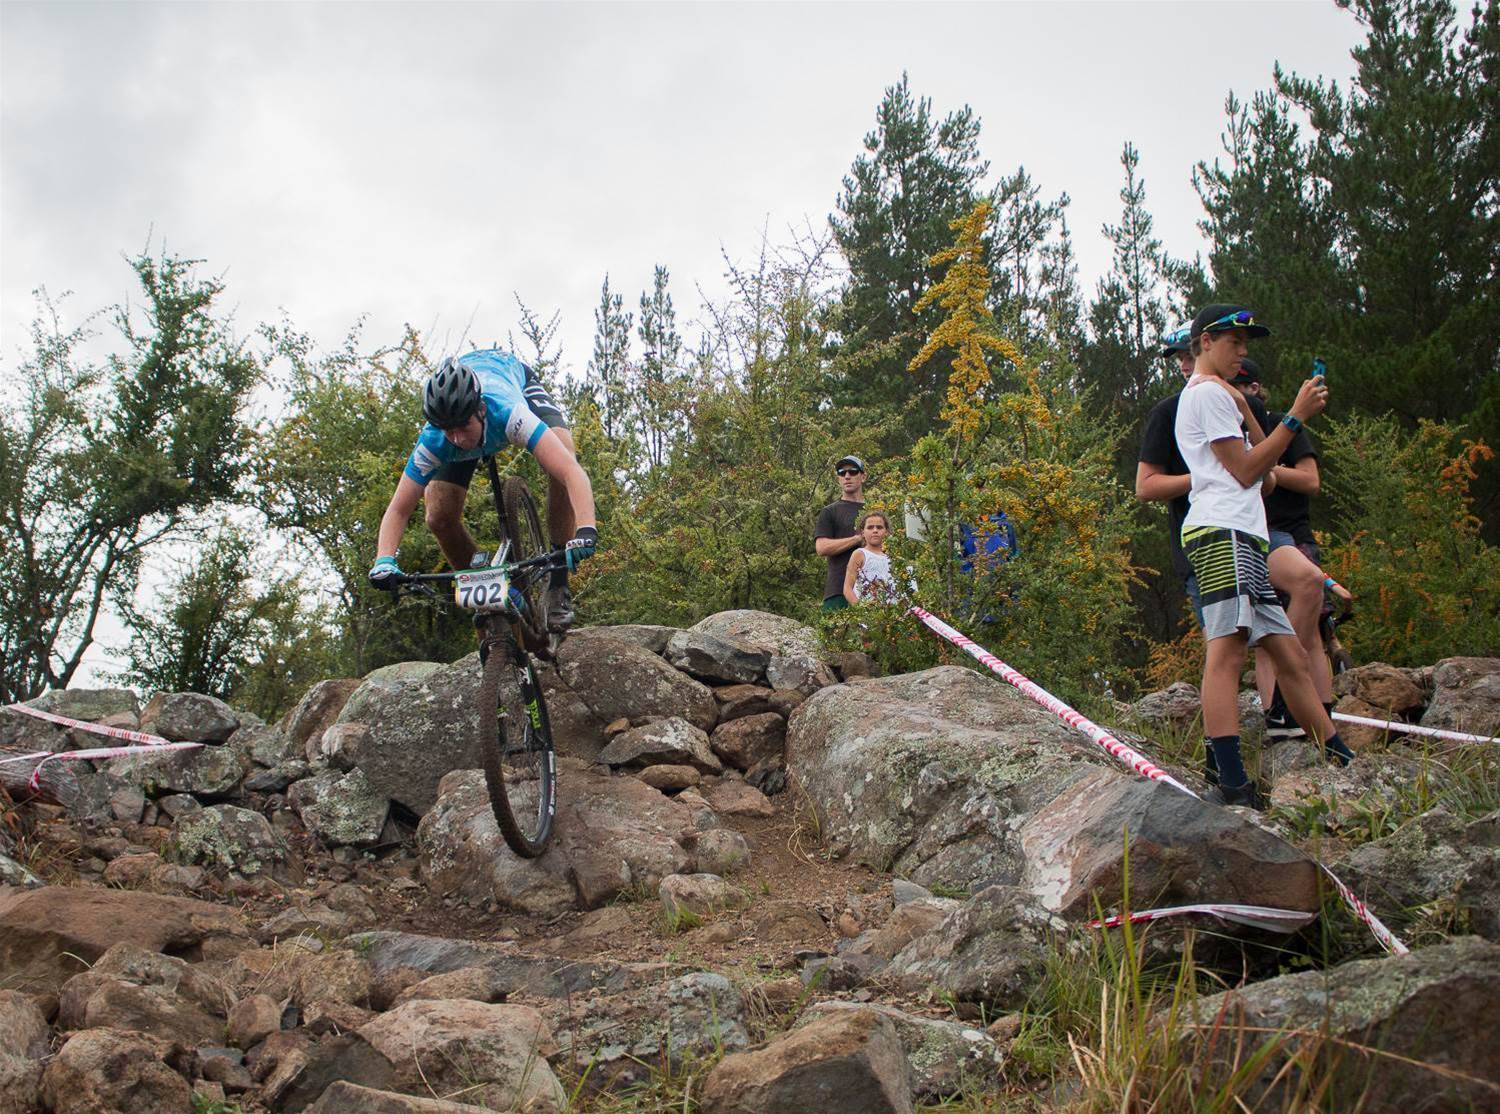 XCO National Championships - Saturday